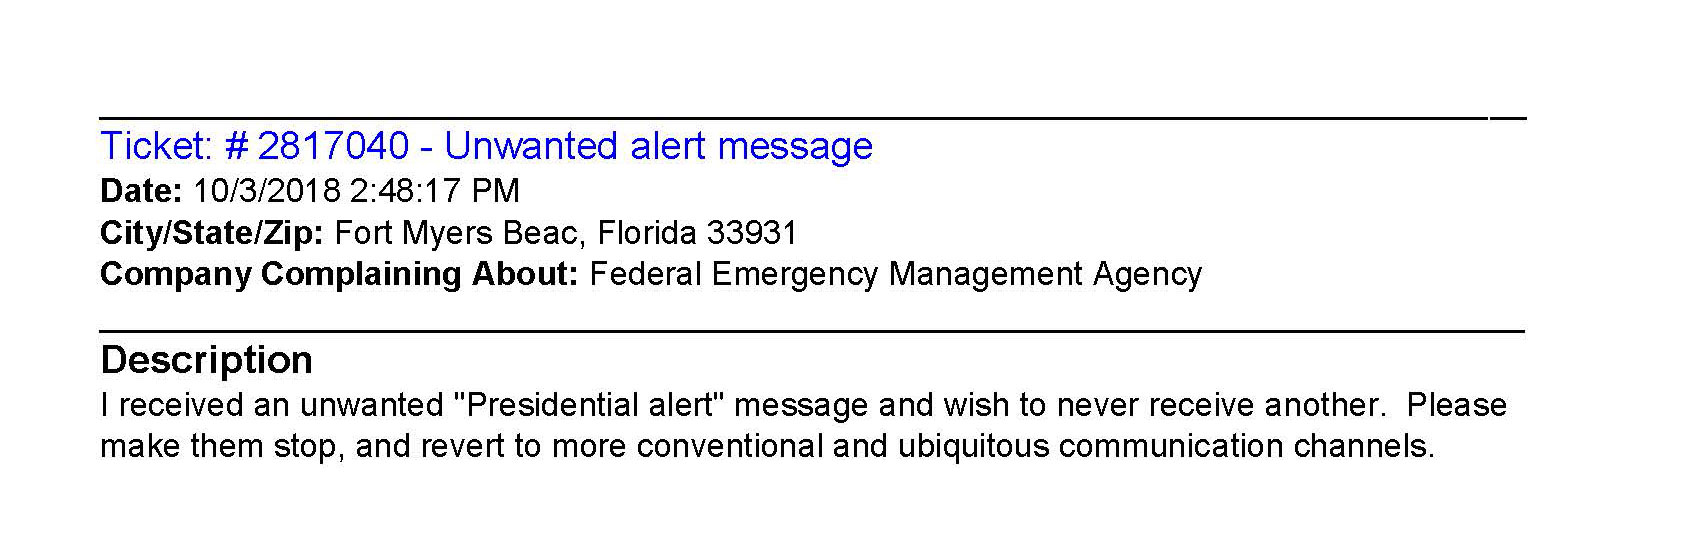 Complaints After the Presidential Emergency Alert: Hatch Act